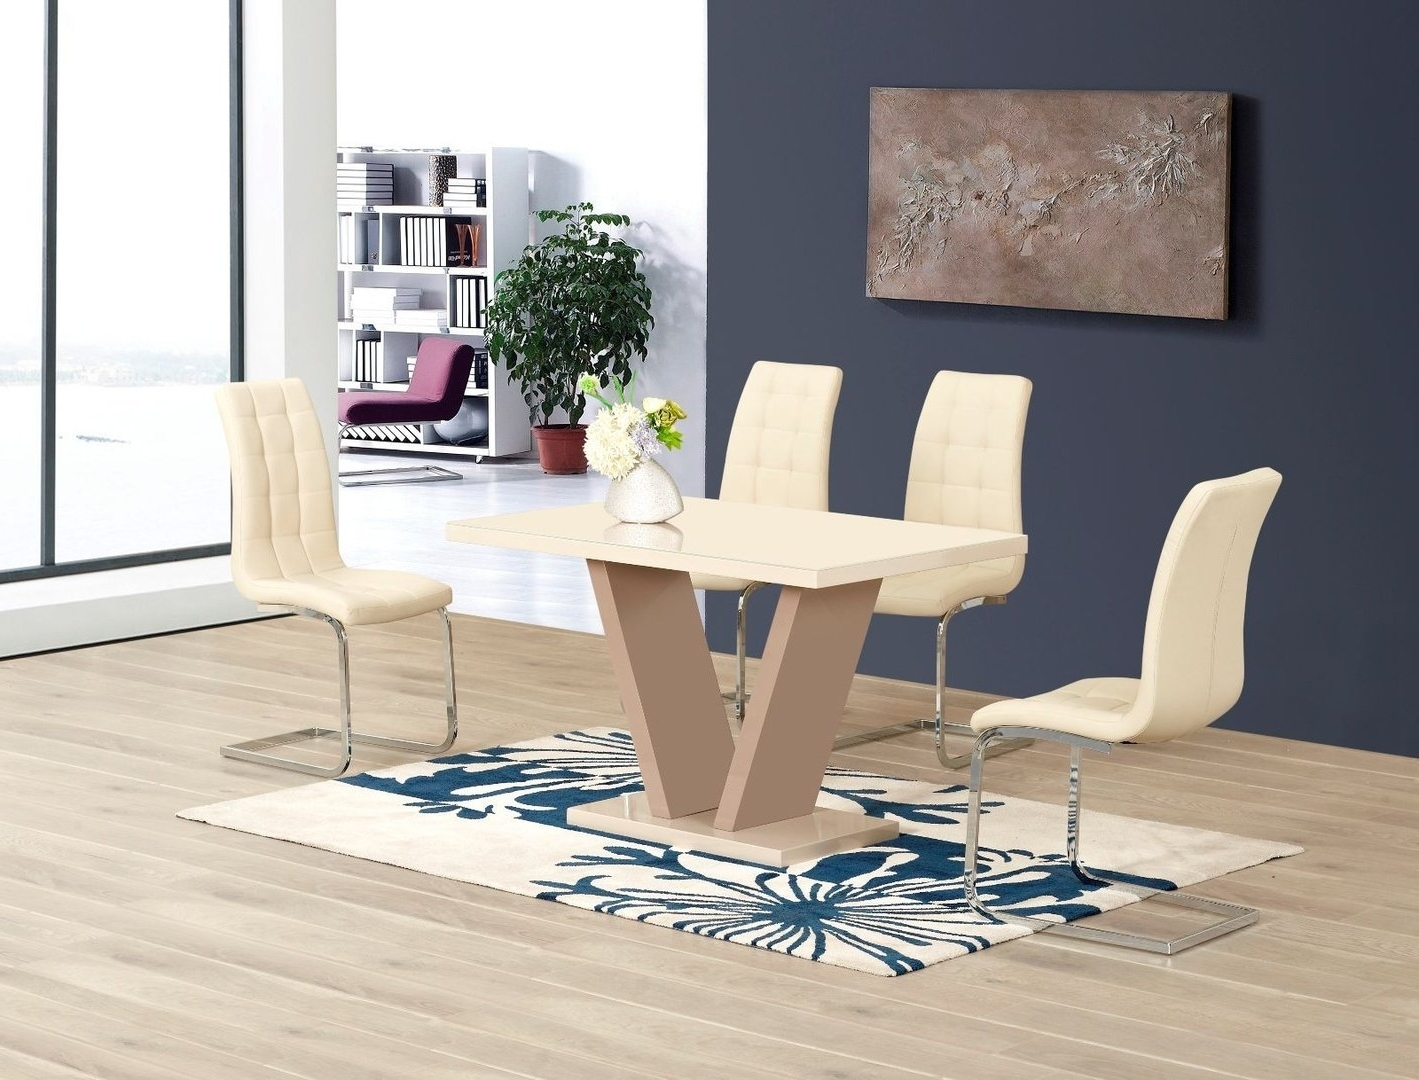 Cream High Gloss Glass Dining Table And 6 Chairs – Homegenies With Regard To 2017 White High Gloss Dining Tables 6 Chairs (View 6 of 25)